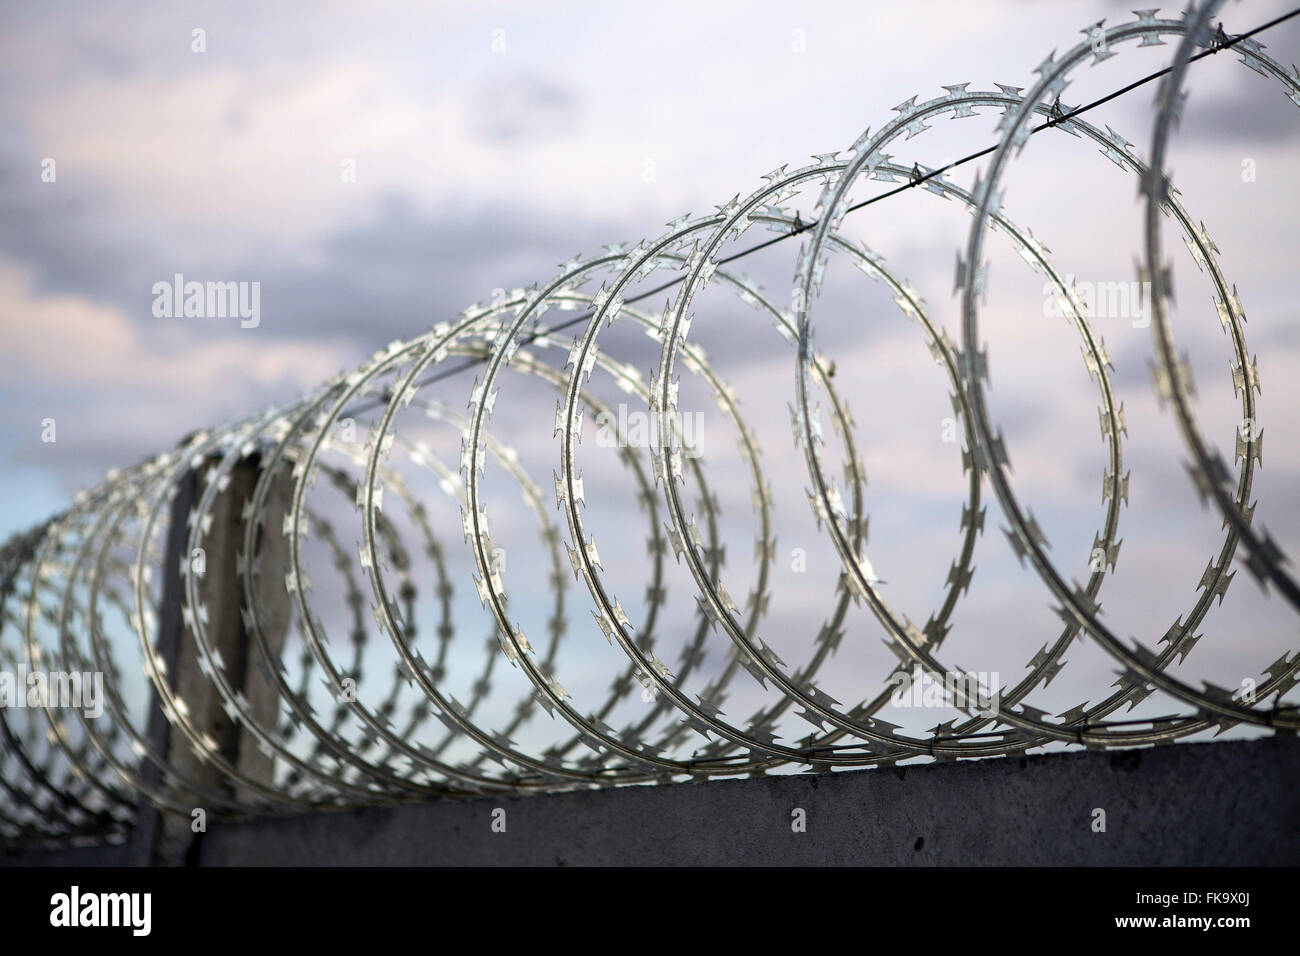 Barbed Stock Photos & Barbed Stock Images - Page 3 - Alamy